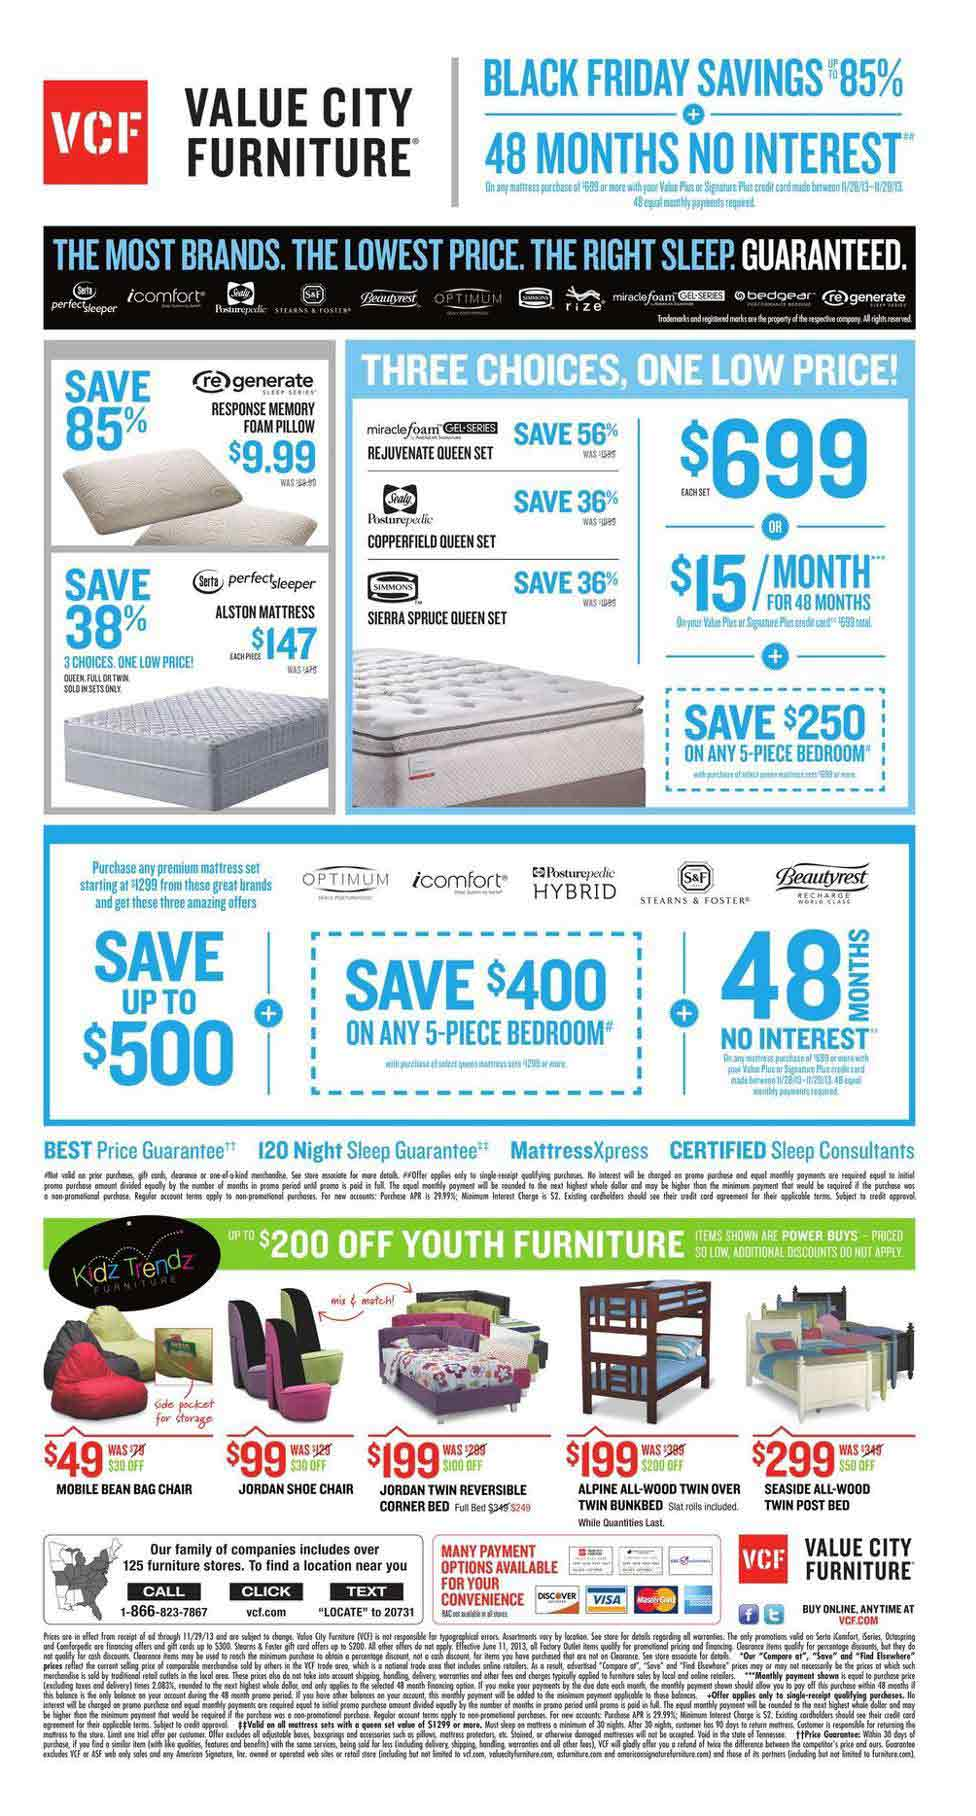 Value-City-Furniture-Black-Friday-08